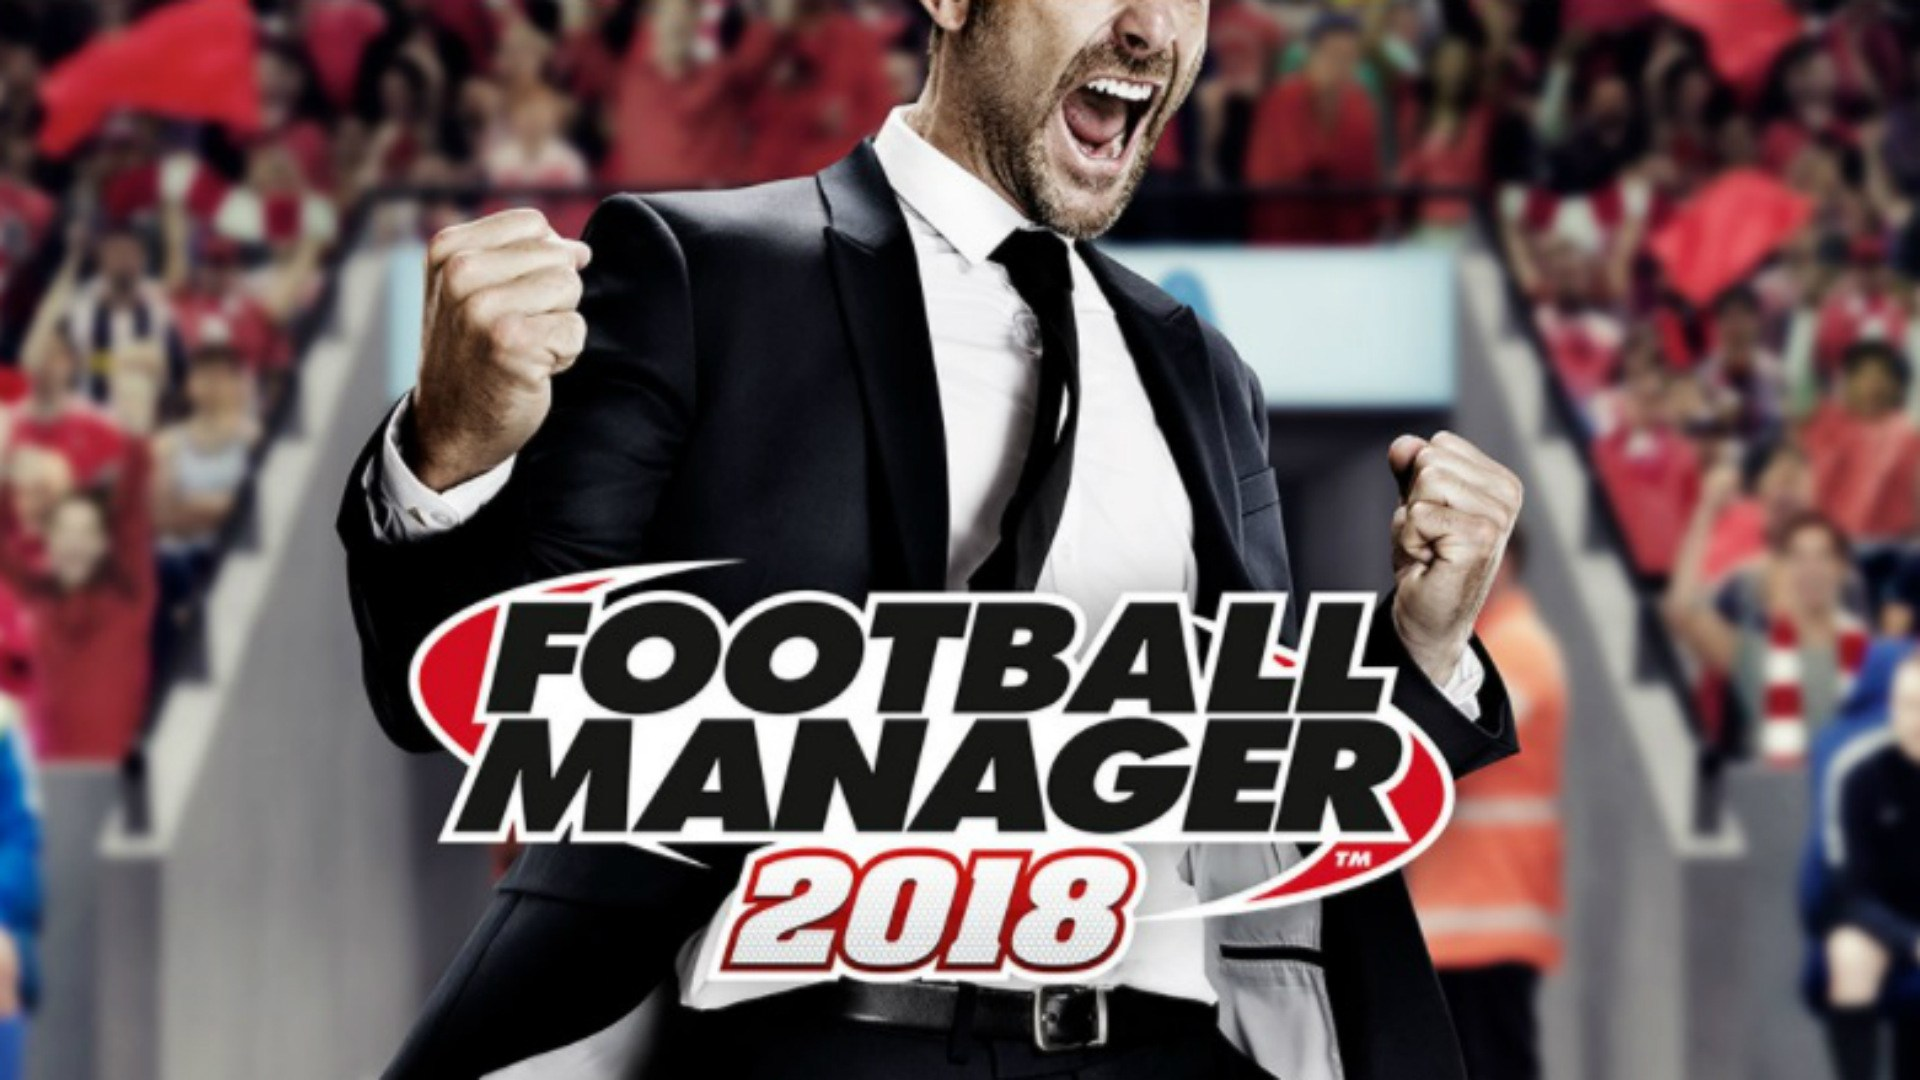 Football Manager 2018 najavio neke novitete